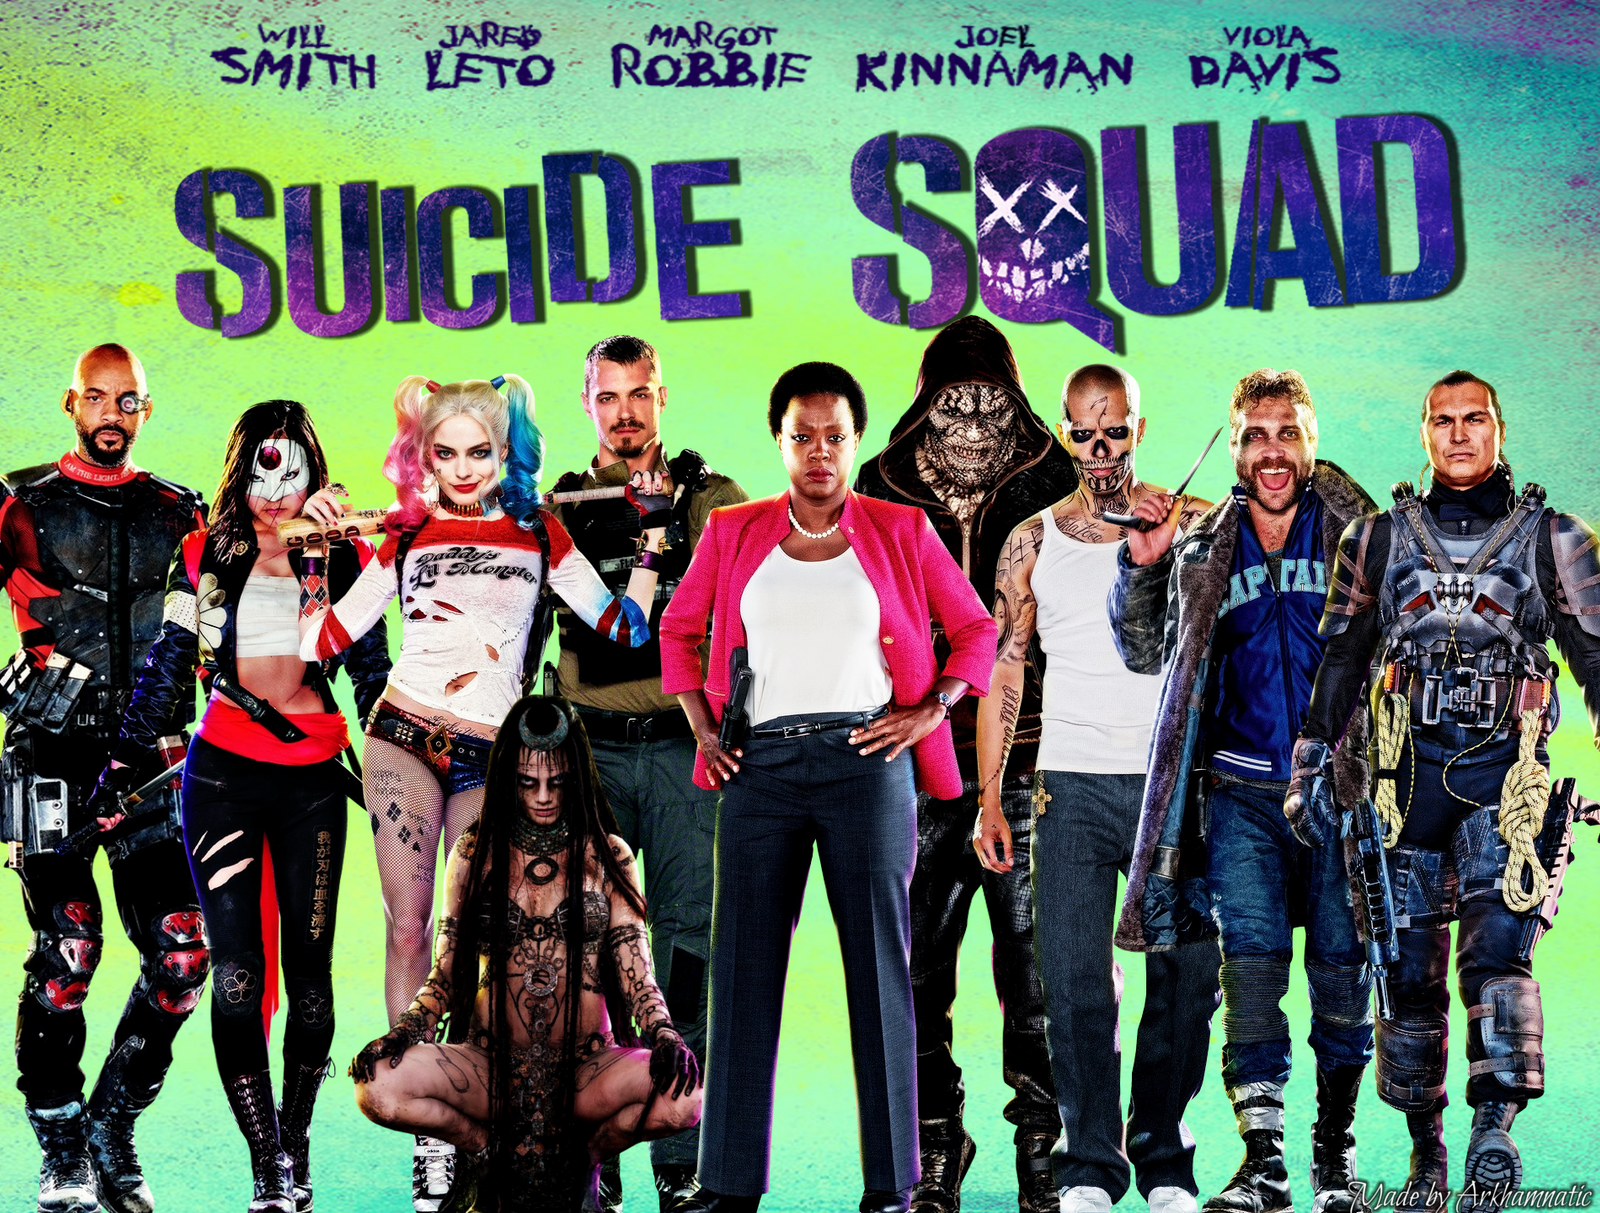 Suicide Squad movie wallpaper by ArkhamNatic on DeviantArt